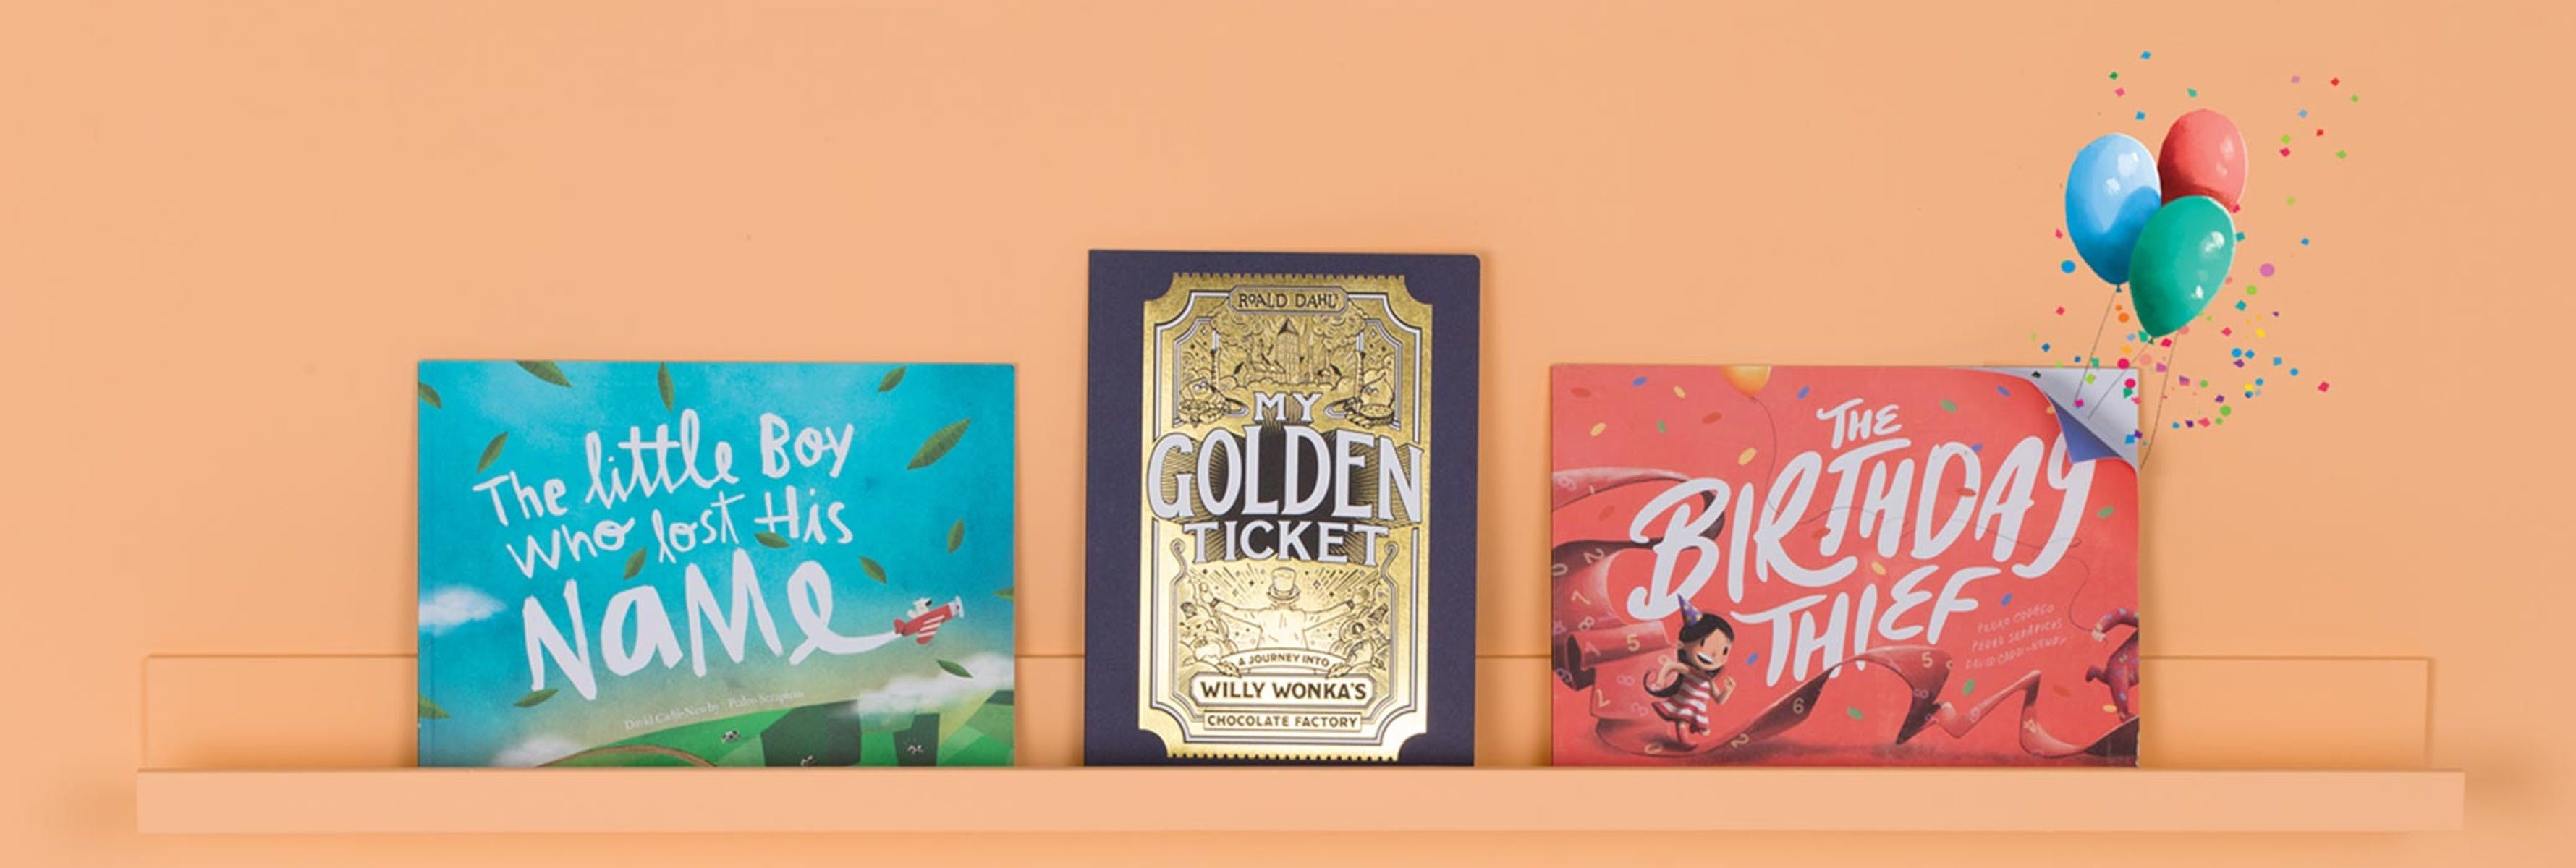 A bookshelf full of our Wonderbly books: Lost My Name, My Golden Ticket, The Birthday Thief